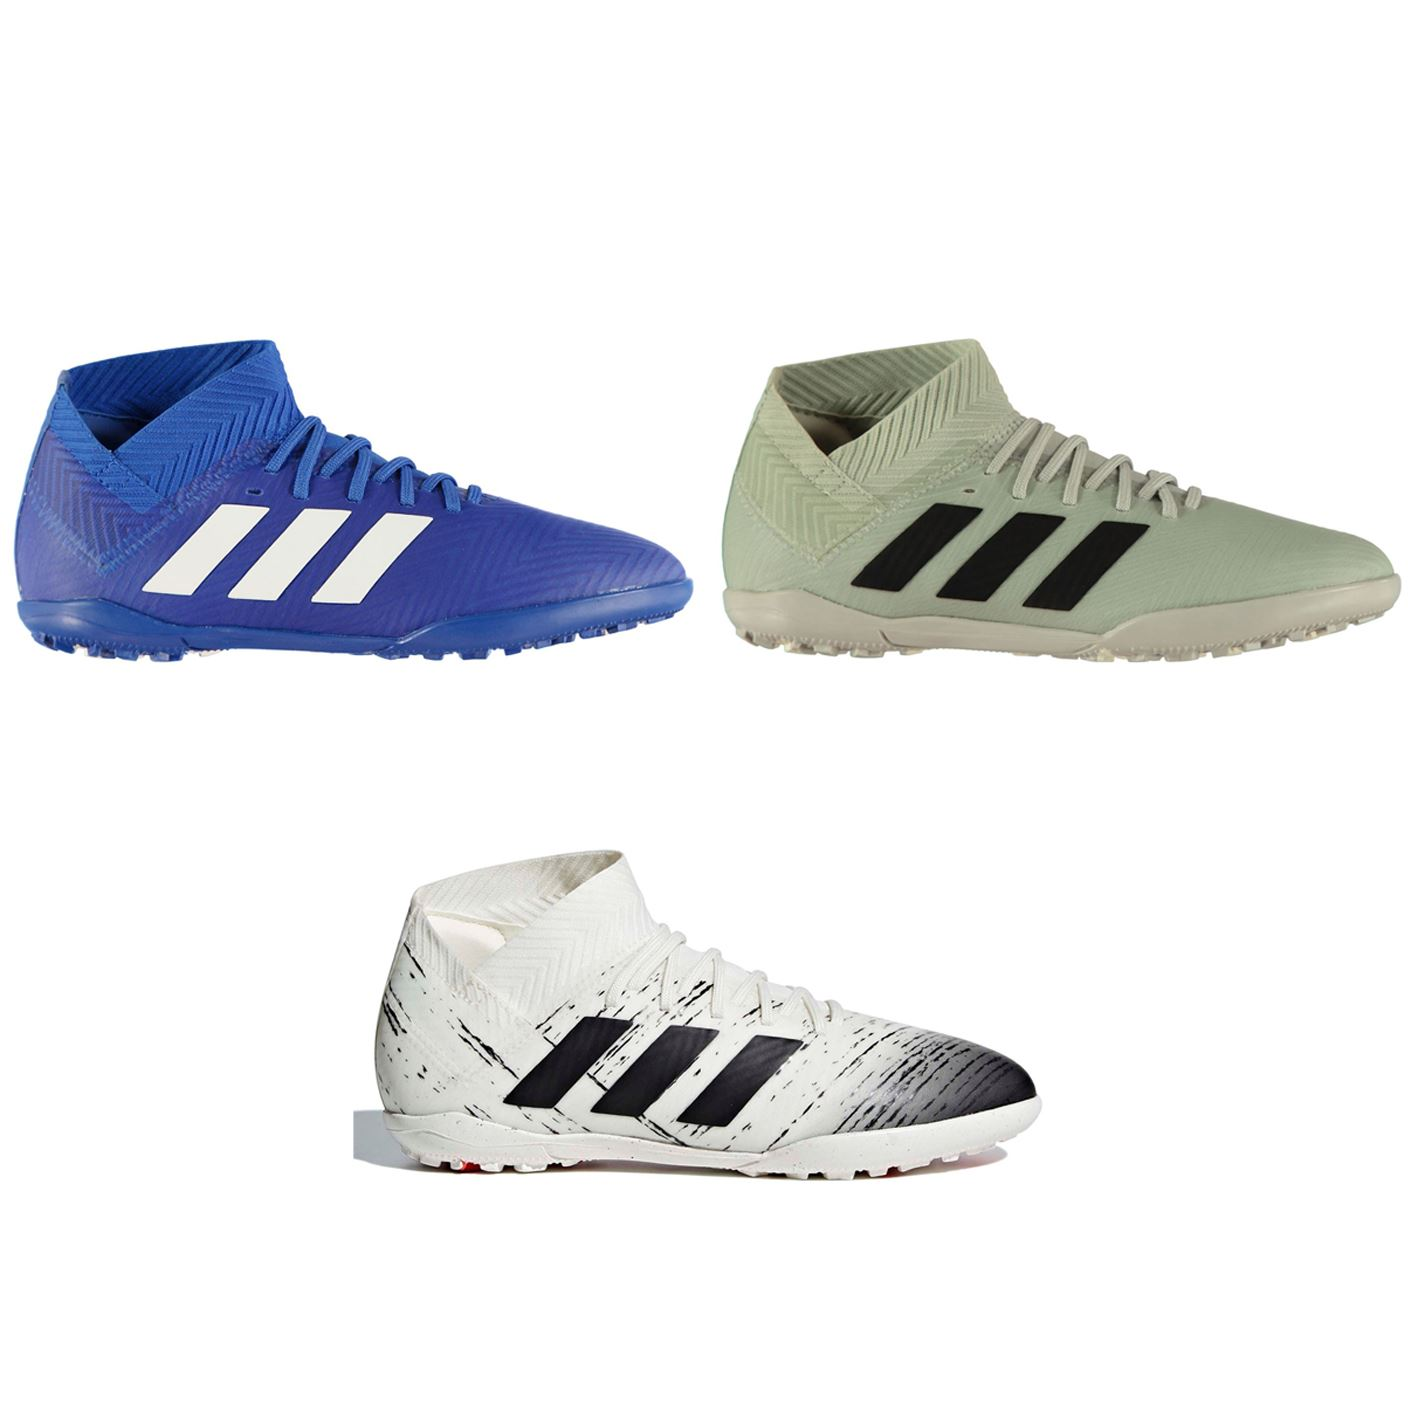 736474fd7f20b3 adidas Nemeziz Tango 18.3 Astro Turf Football Trainers Childs Soccer Shoes